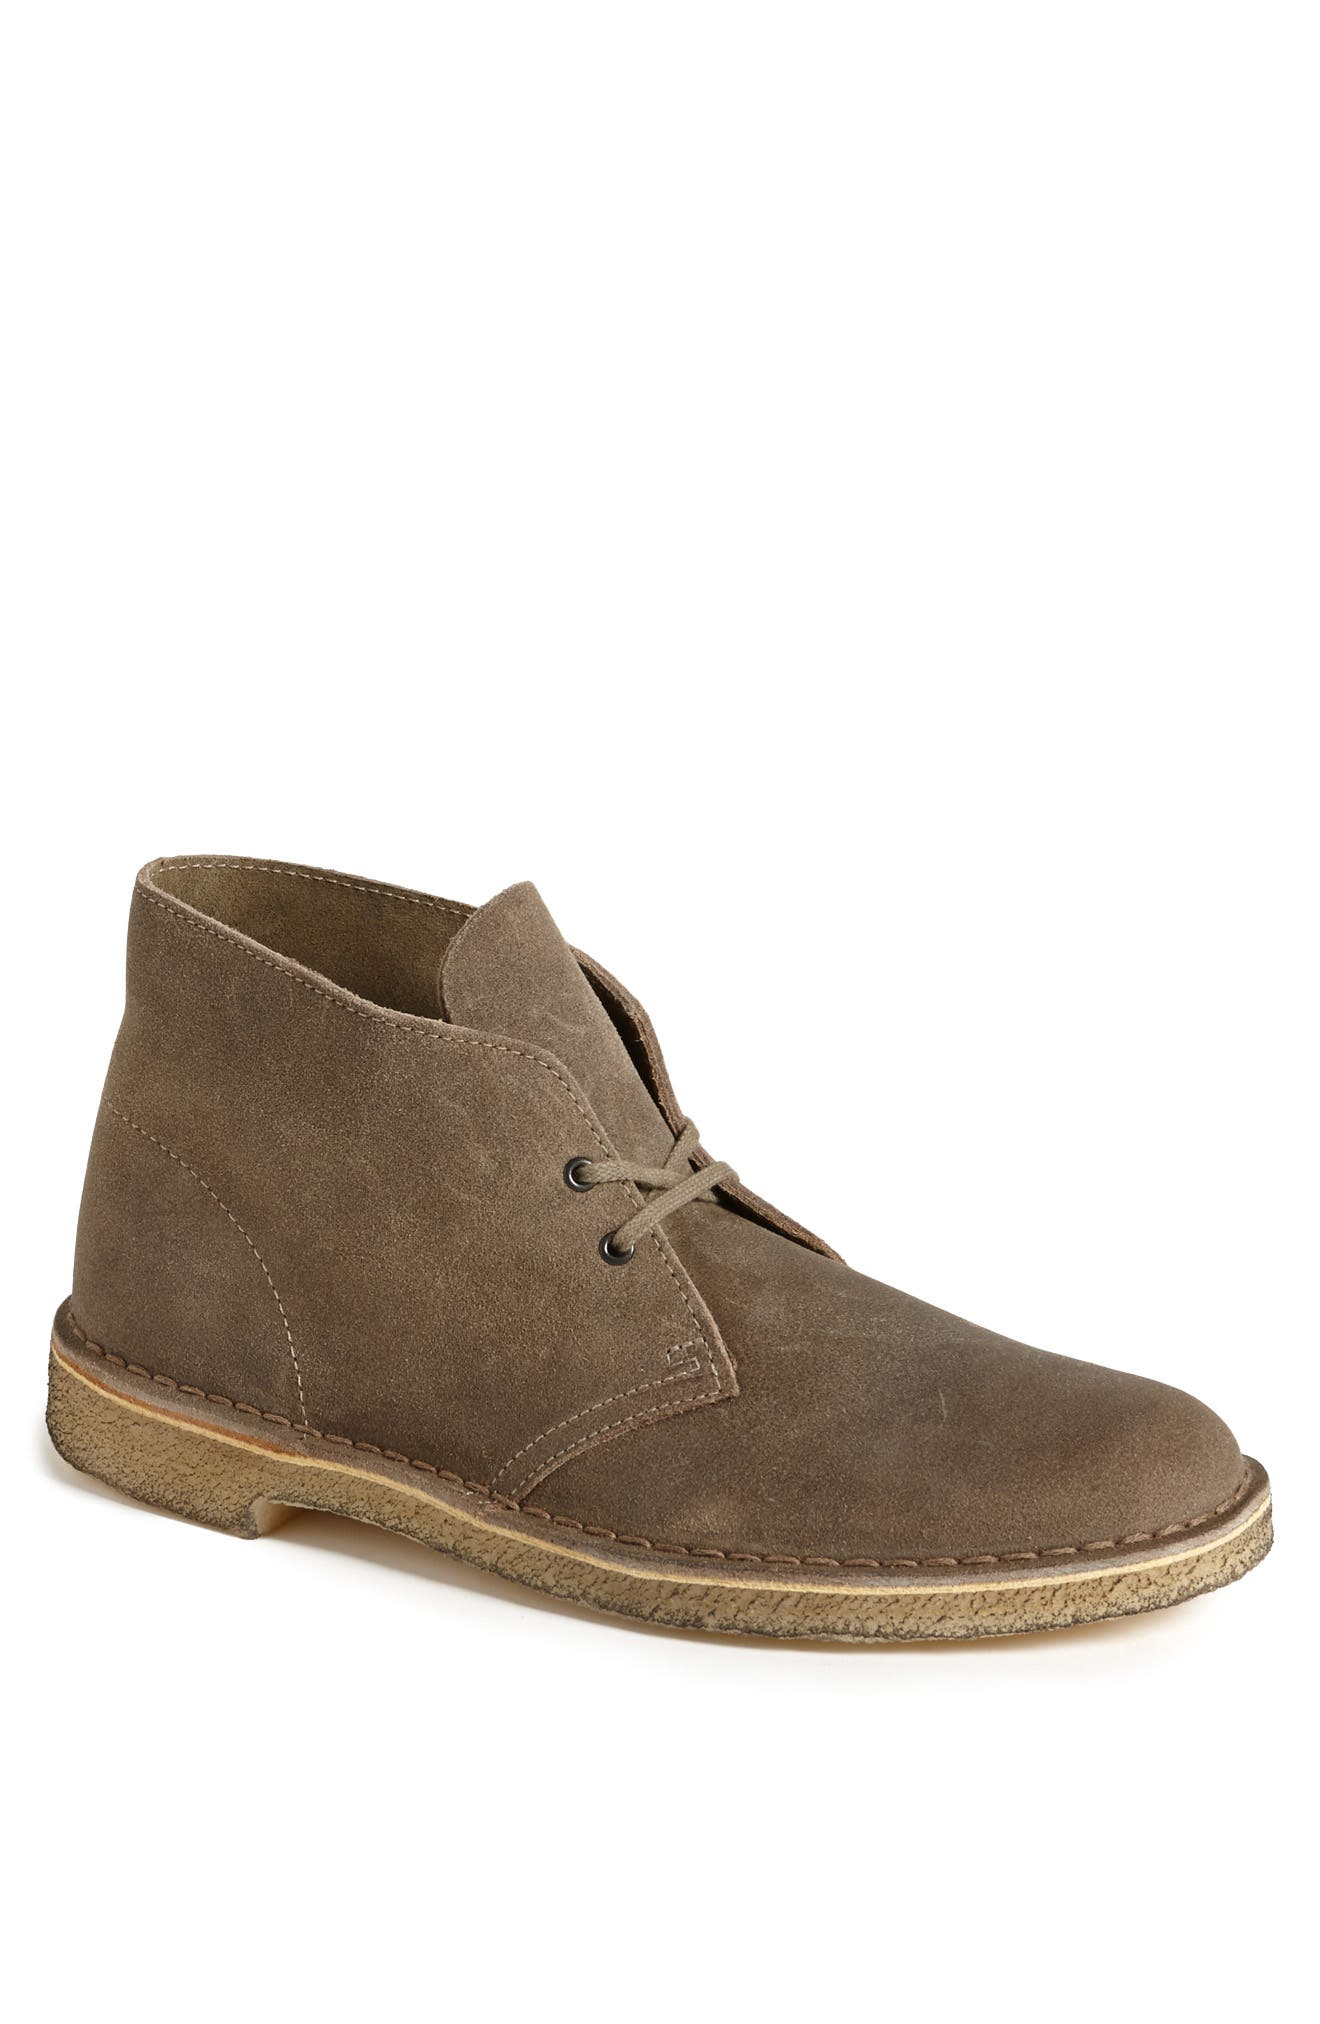 'Desert' Boot,                         Main,                         color, Taupe Distressed Suede